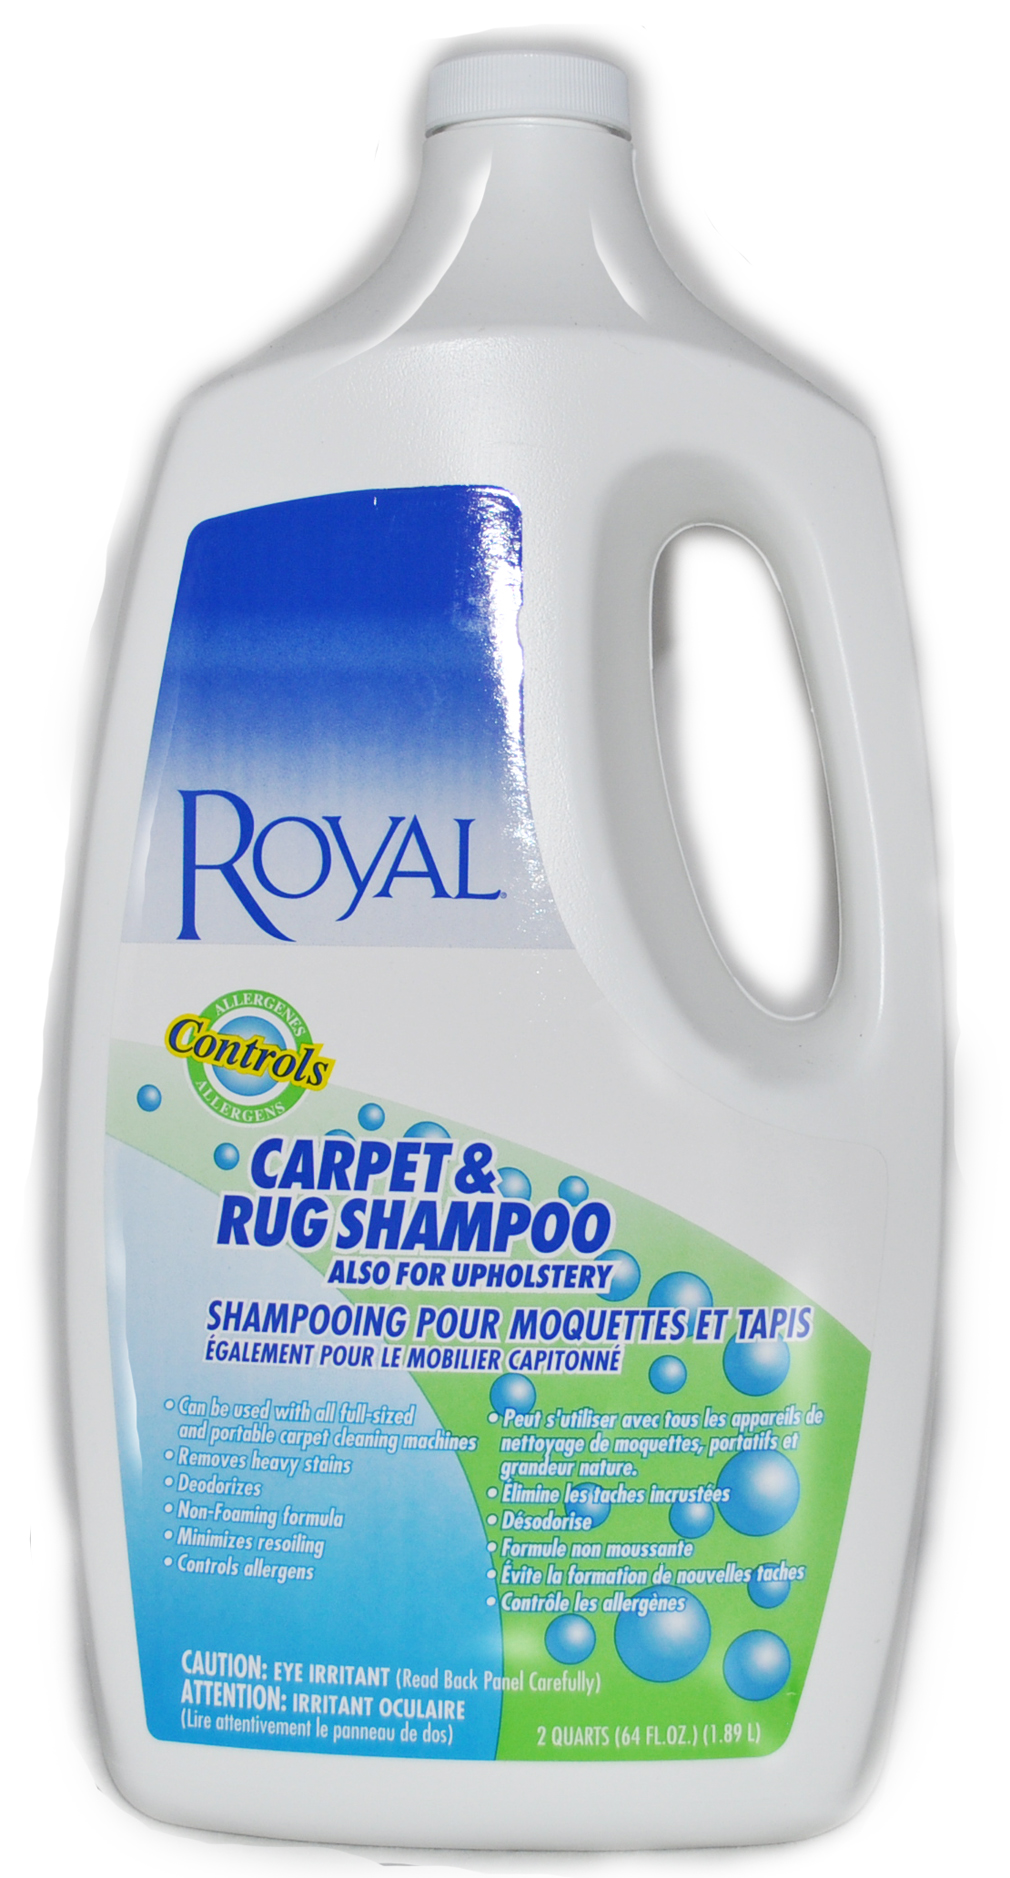 Royal Carpet & Rug Shampoo 64oz at Sears.com